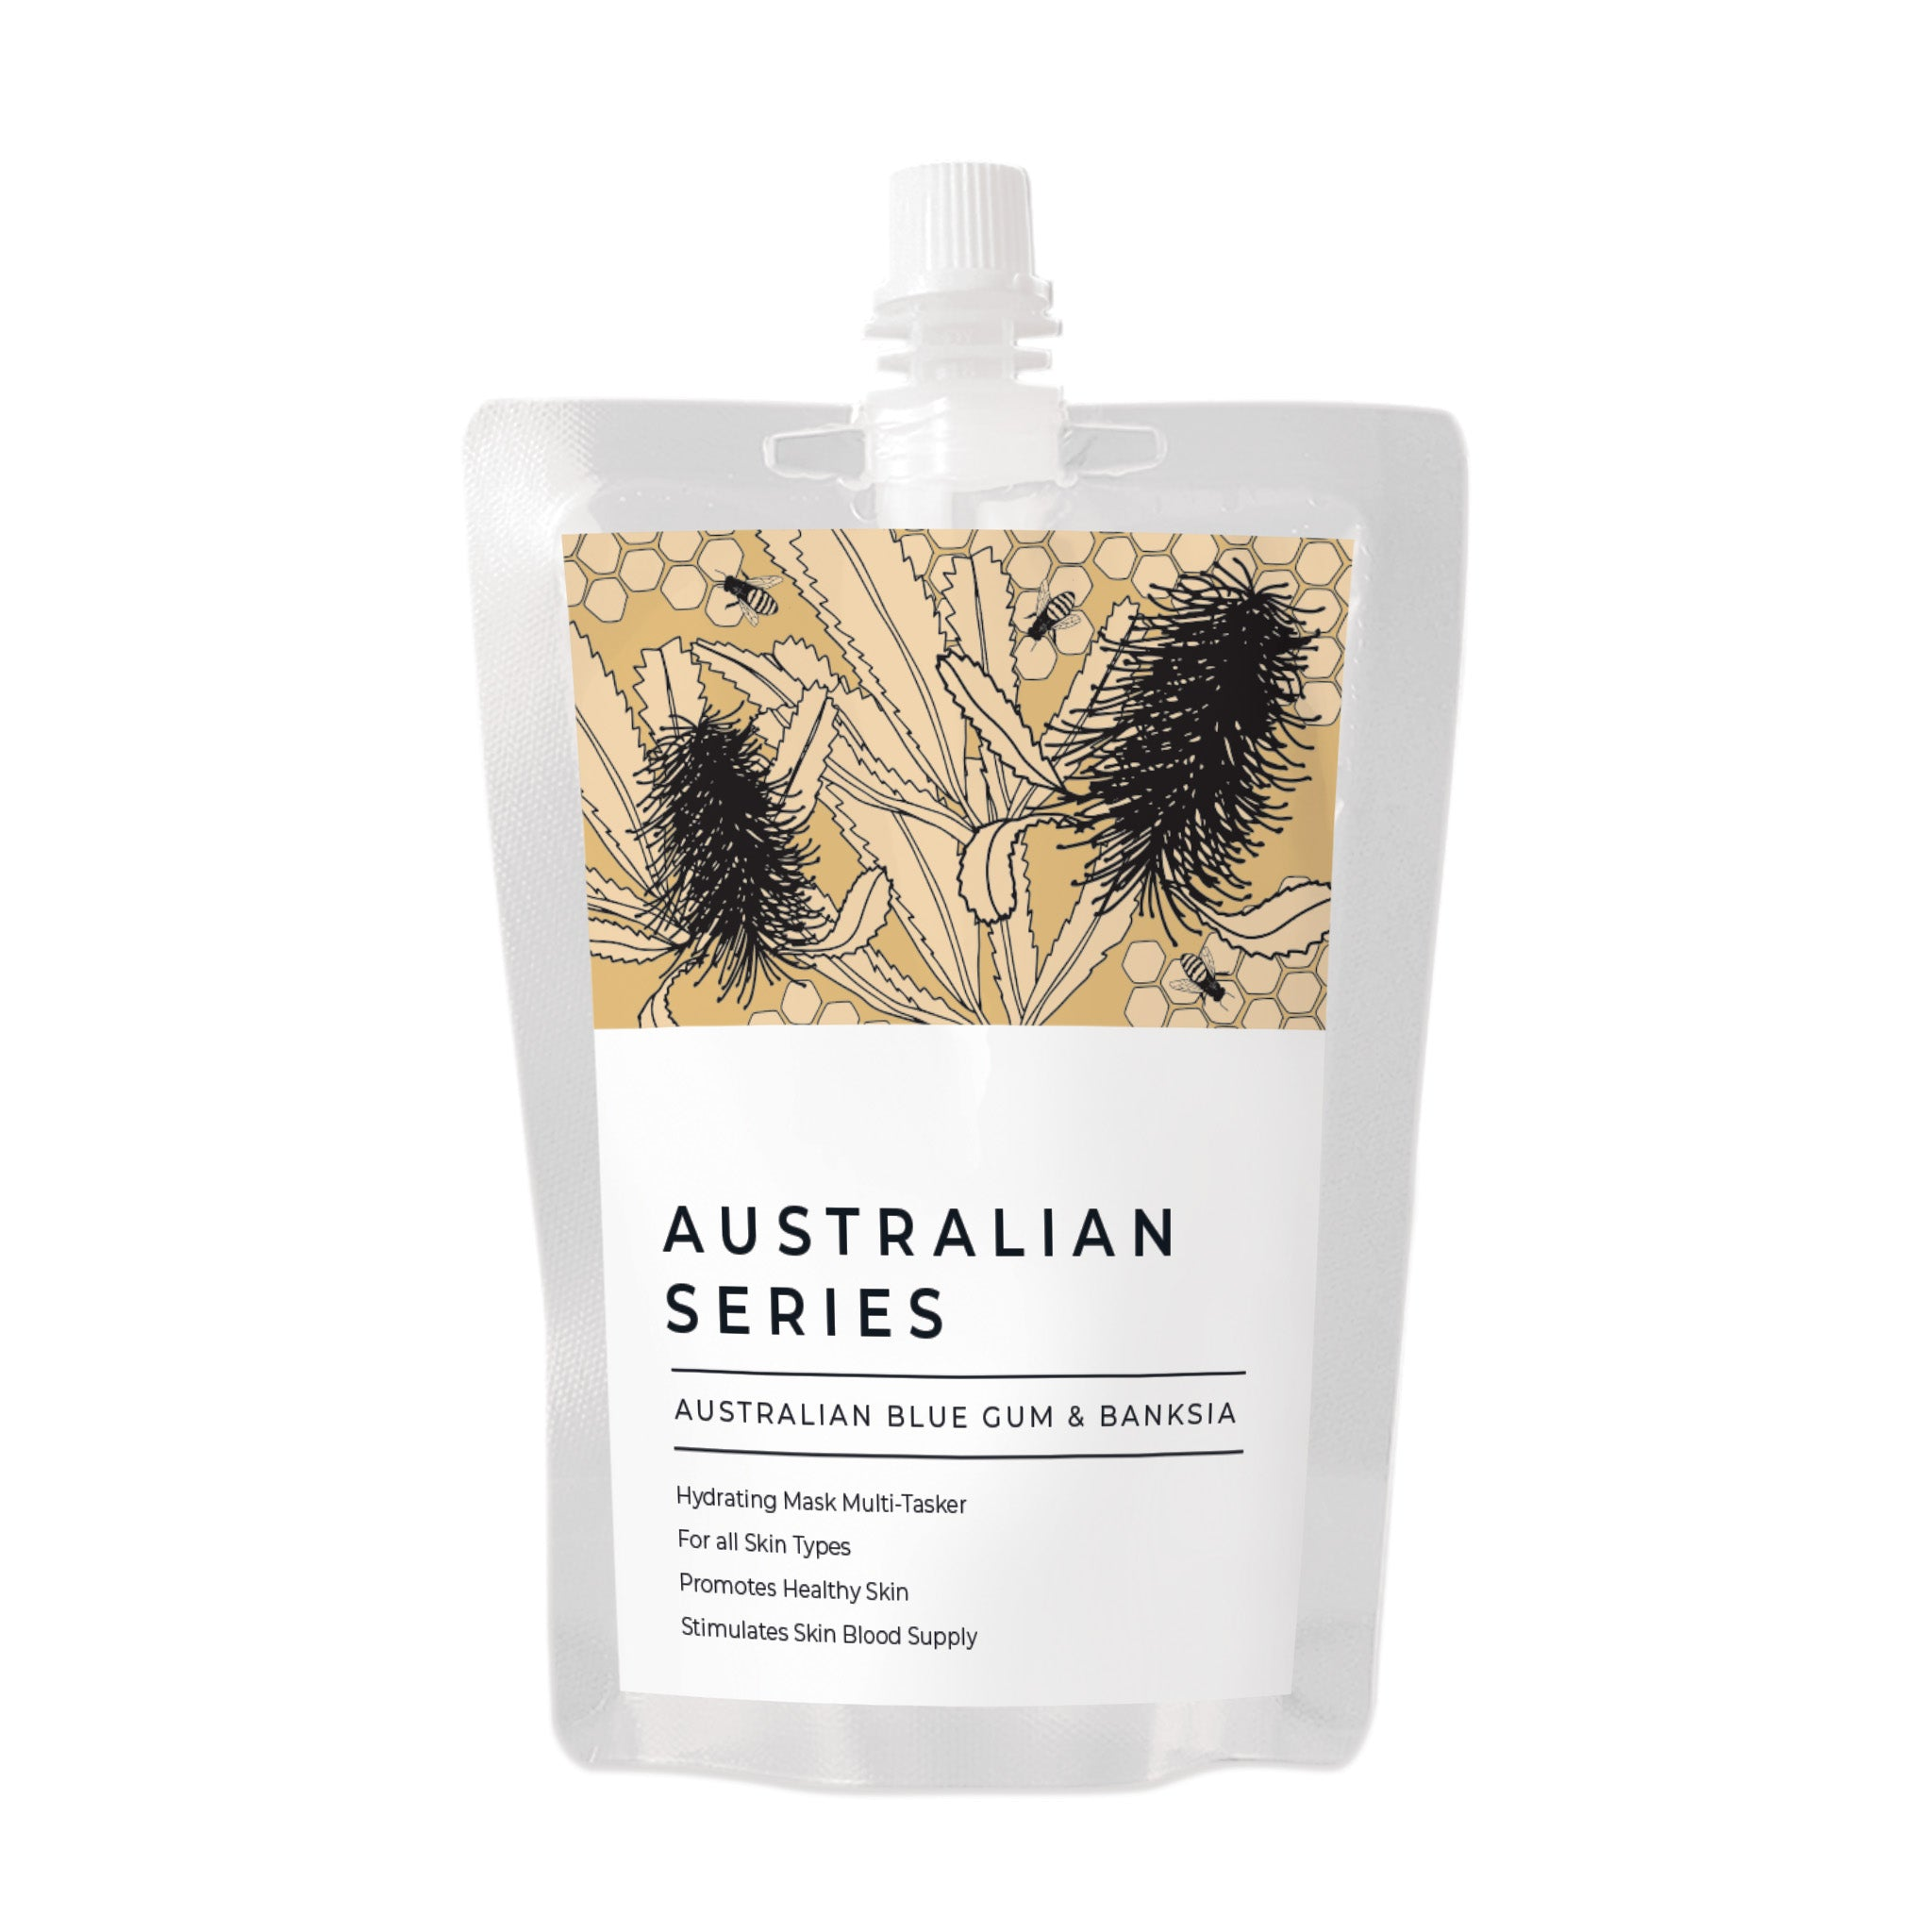 Australian Blue Gum and Banksia - Hydration Multi-Tasker